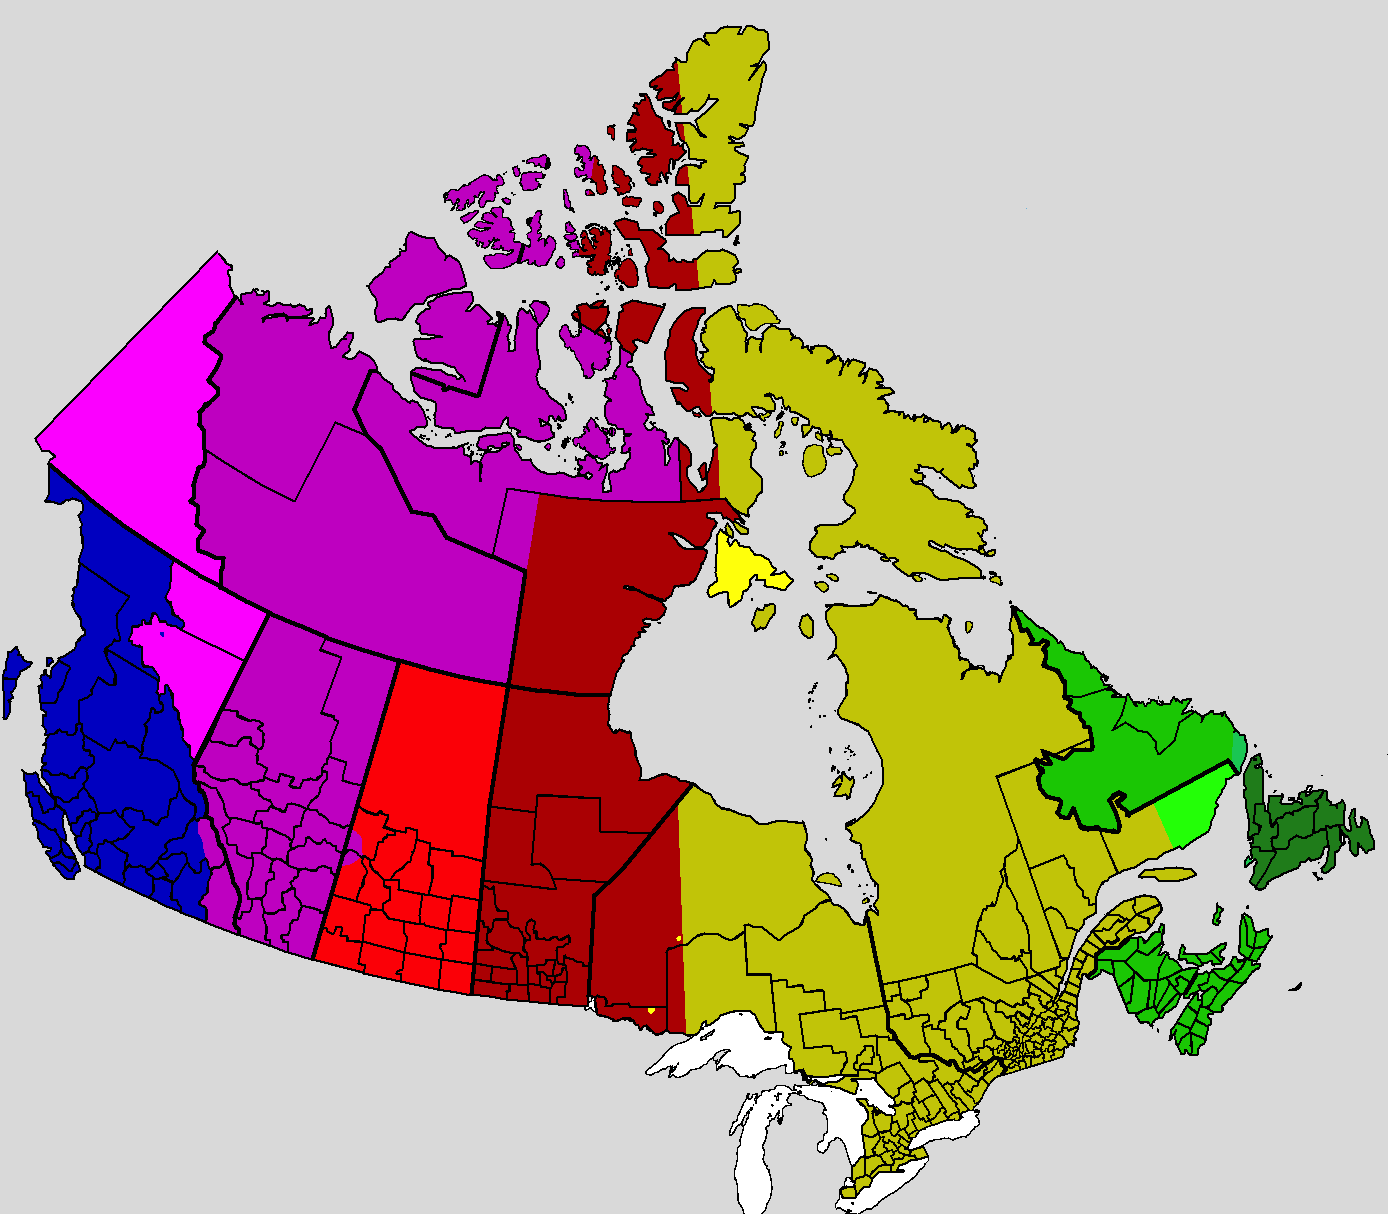 Time in Canada - Wikipedia Canada Time Zone Map on canada gains independence, canada time zones list, canada area code map, canada zip map, canada transportation map, canada provinces time zones, canada time now, montreal canada map, canada city map, canada political map, canada region map, canada latitude and longitude map, canada us time zones, canada provinces map, canada wildfires map, canada time zones north america, winnipeg canada map, canada time zones chart, canada time zones by area code, canada time zones by city,